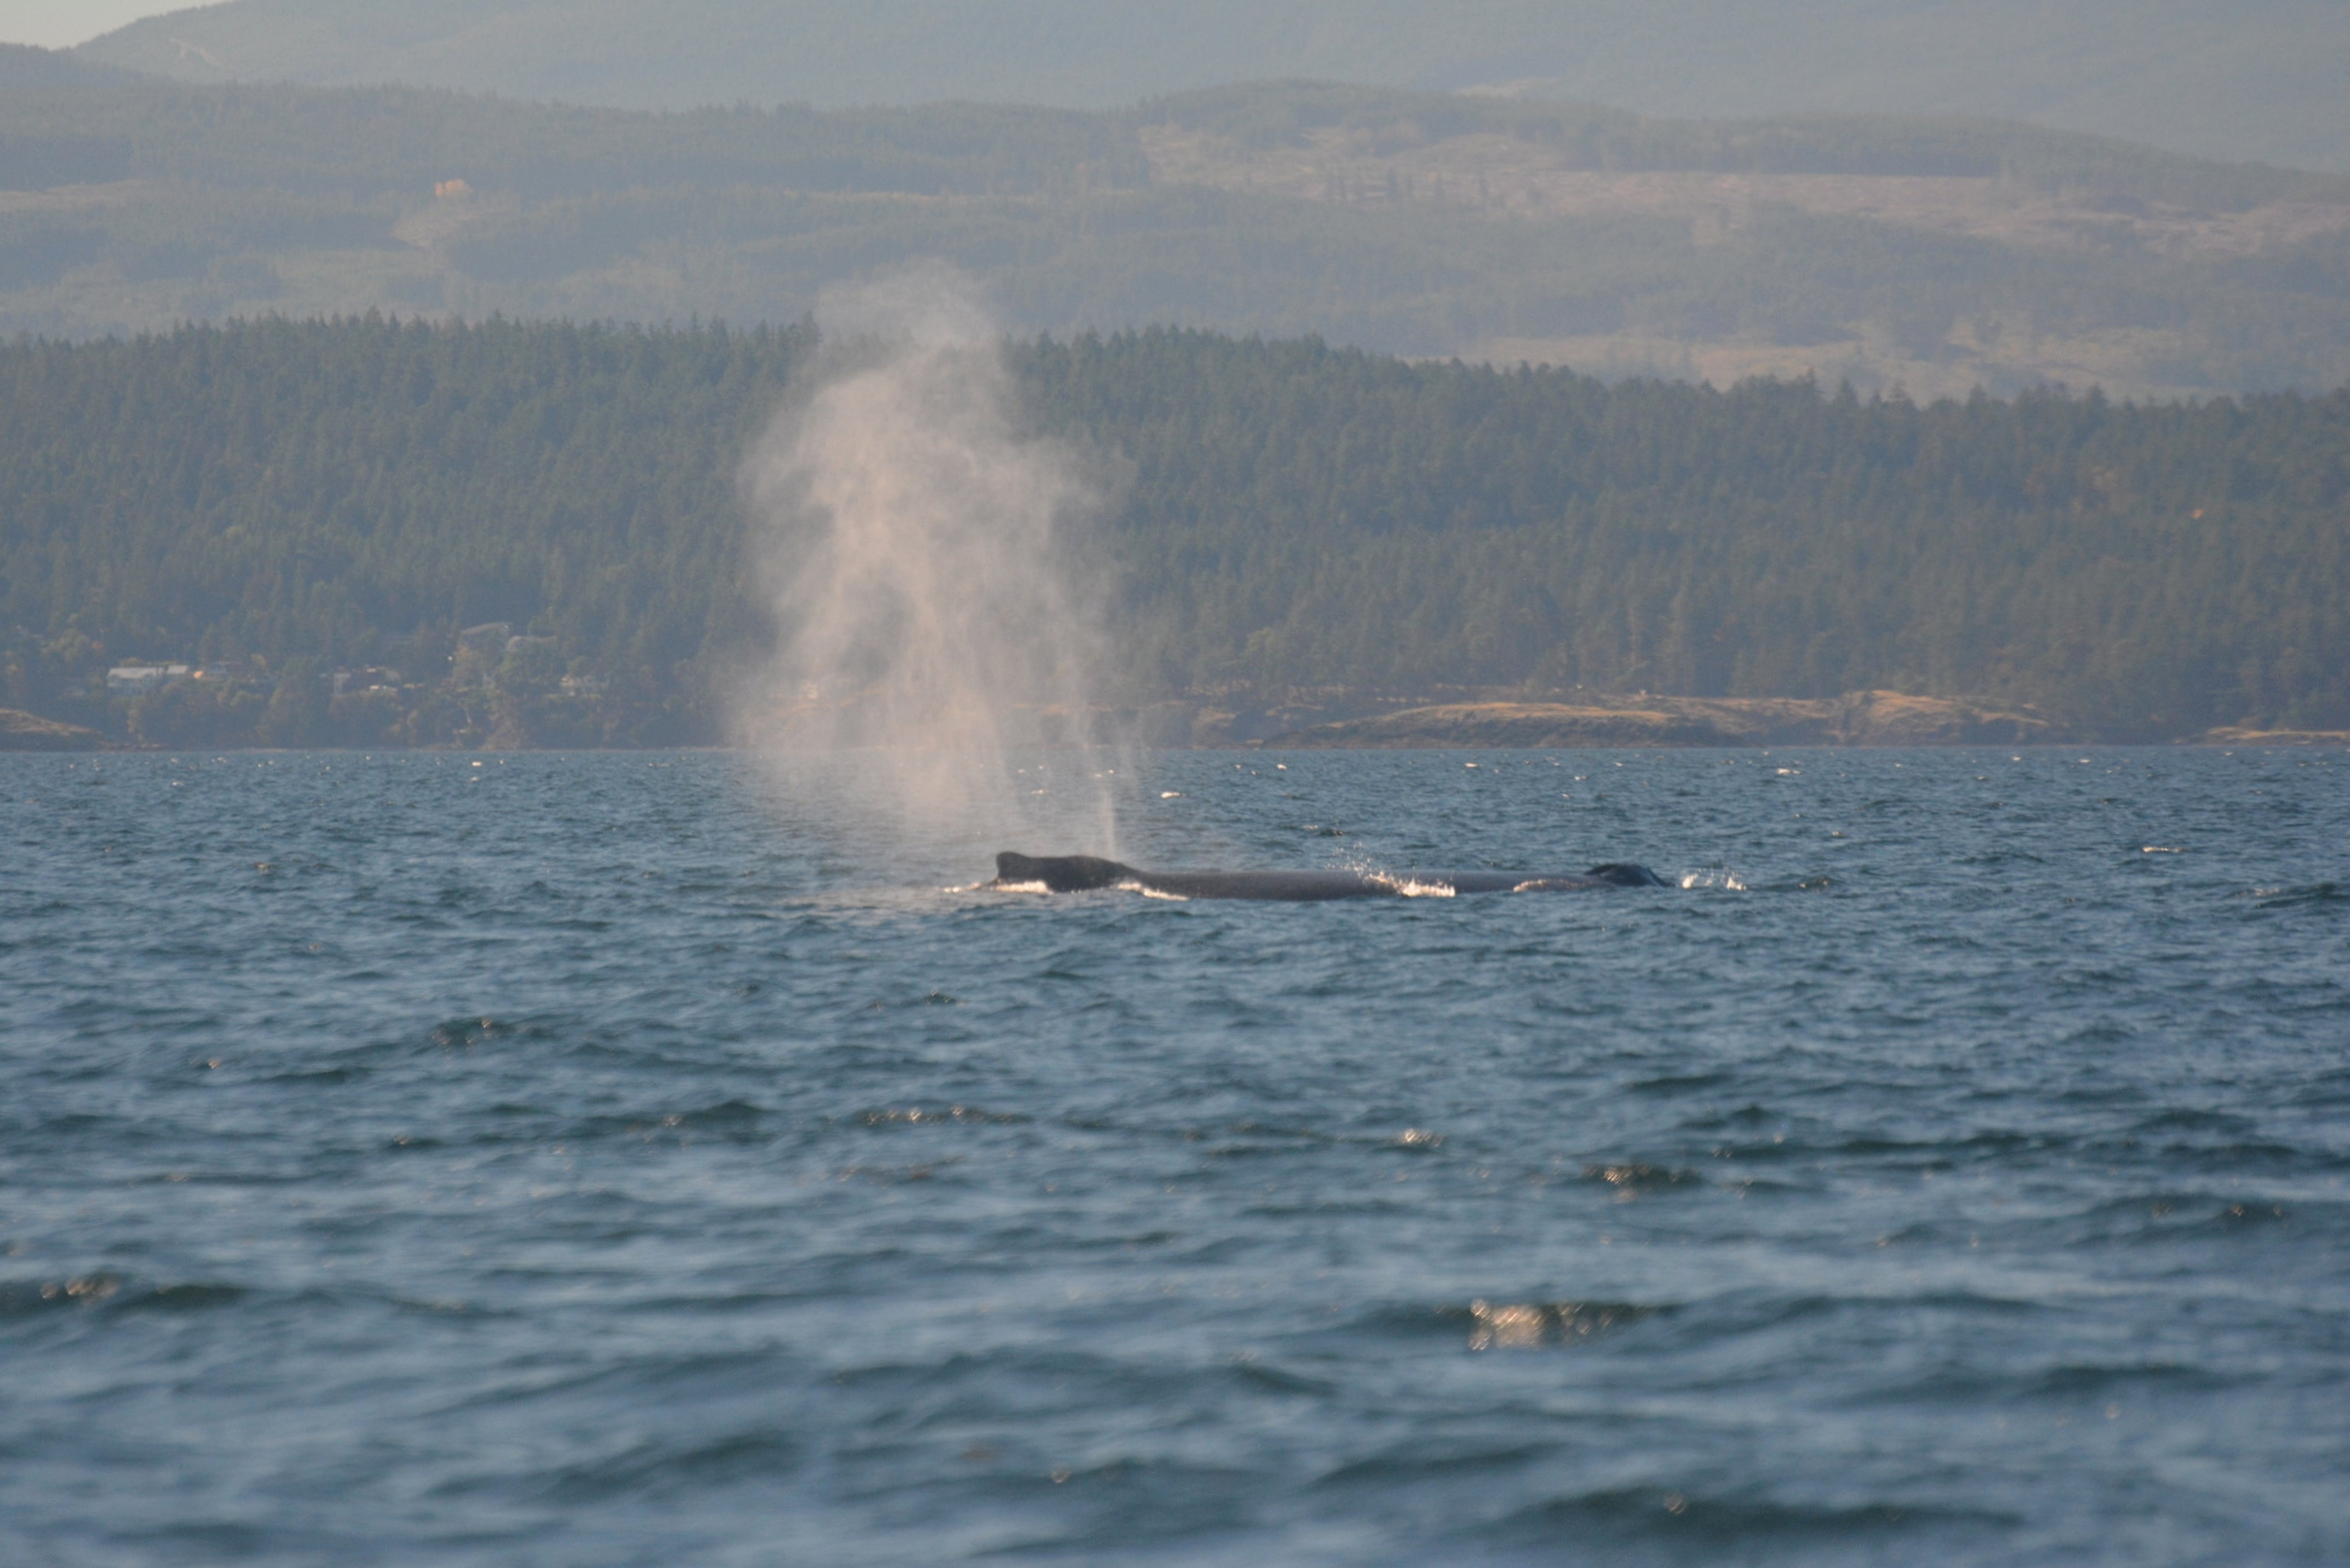 A humpback whale's blow can shoot 10-15 feet up into the air! Photo by Alanna Vivani